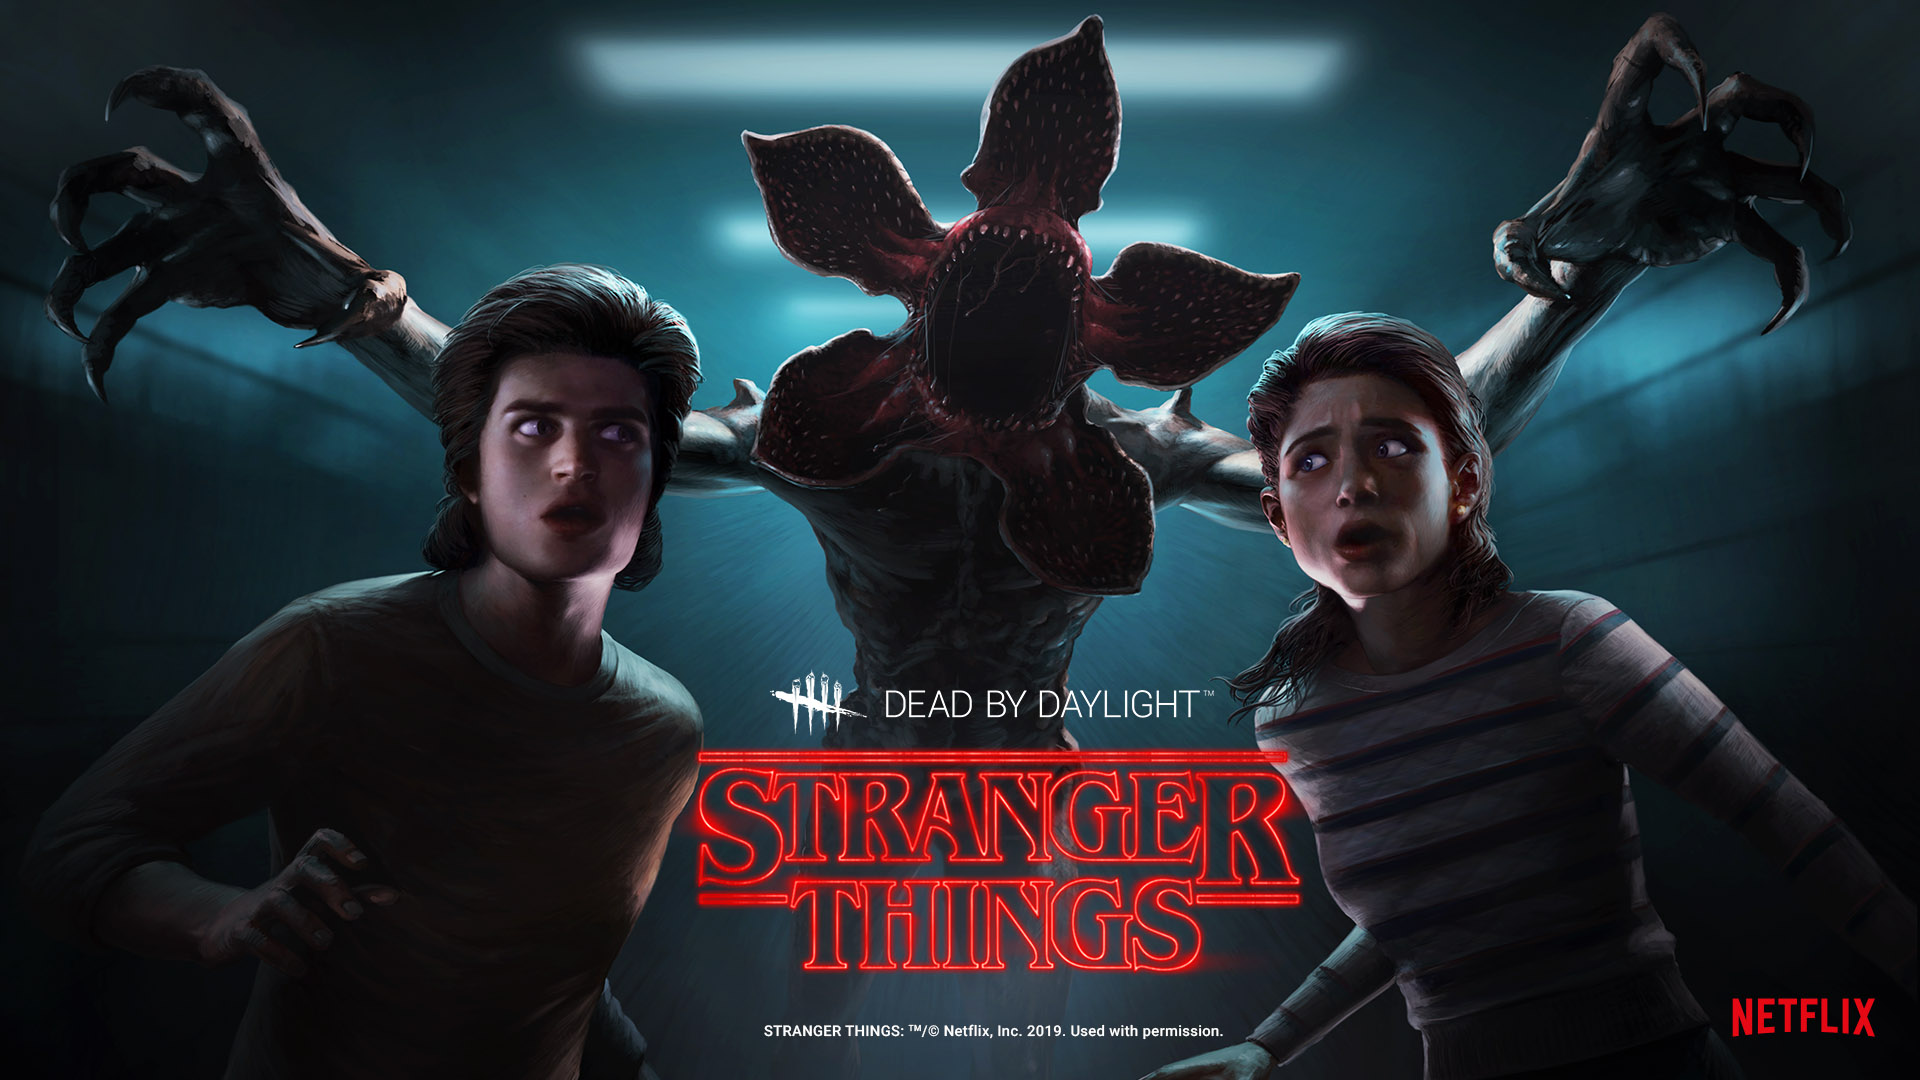 Stranger Things is coming to Dead by Daylight in a new update